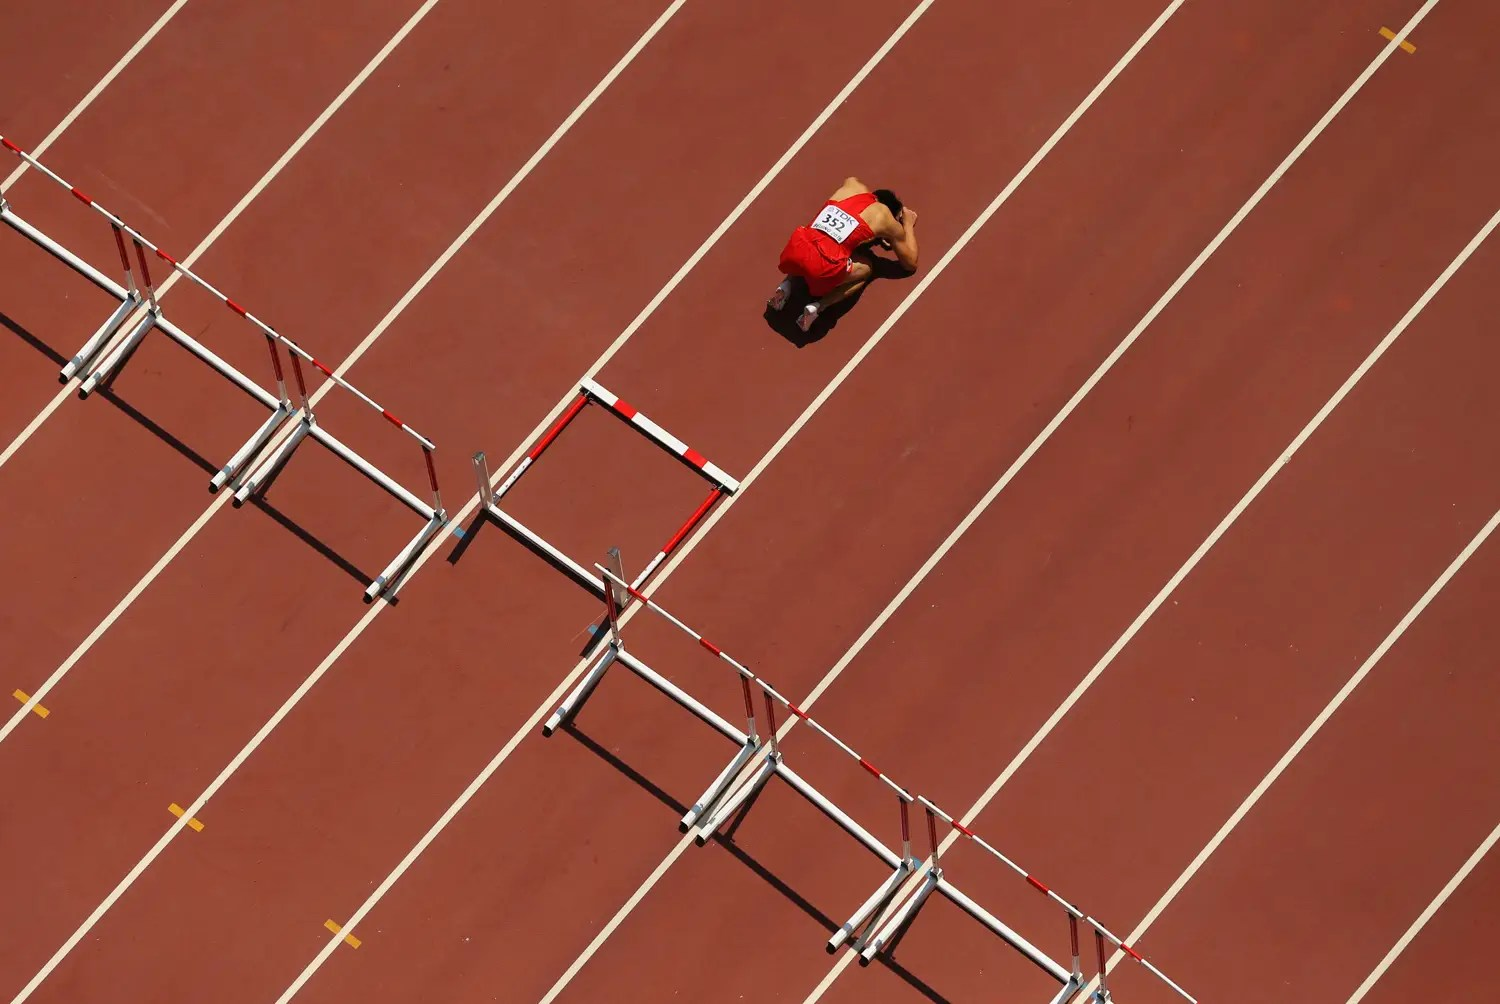 Chinese hurdler Honglin Zhang is devastated after tripping on a hurdle in the 110meters.